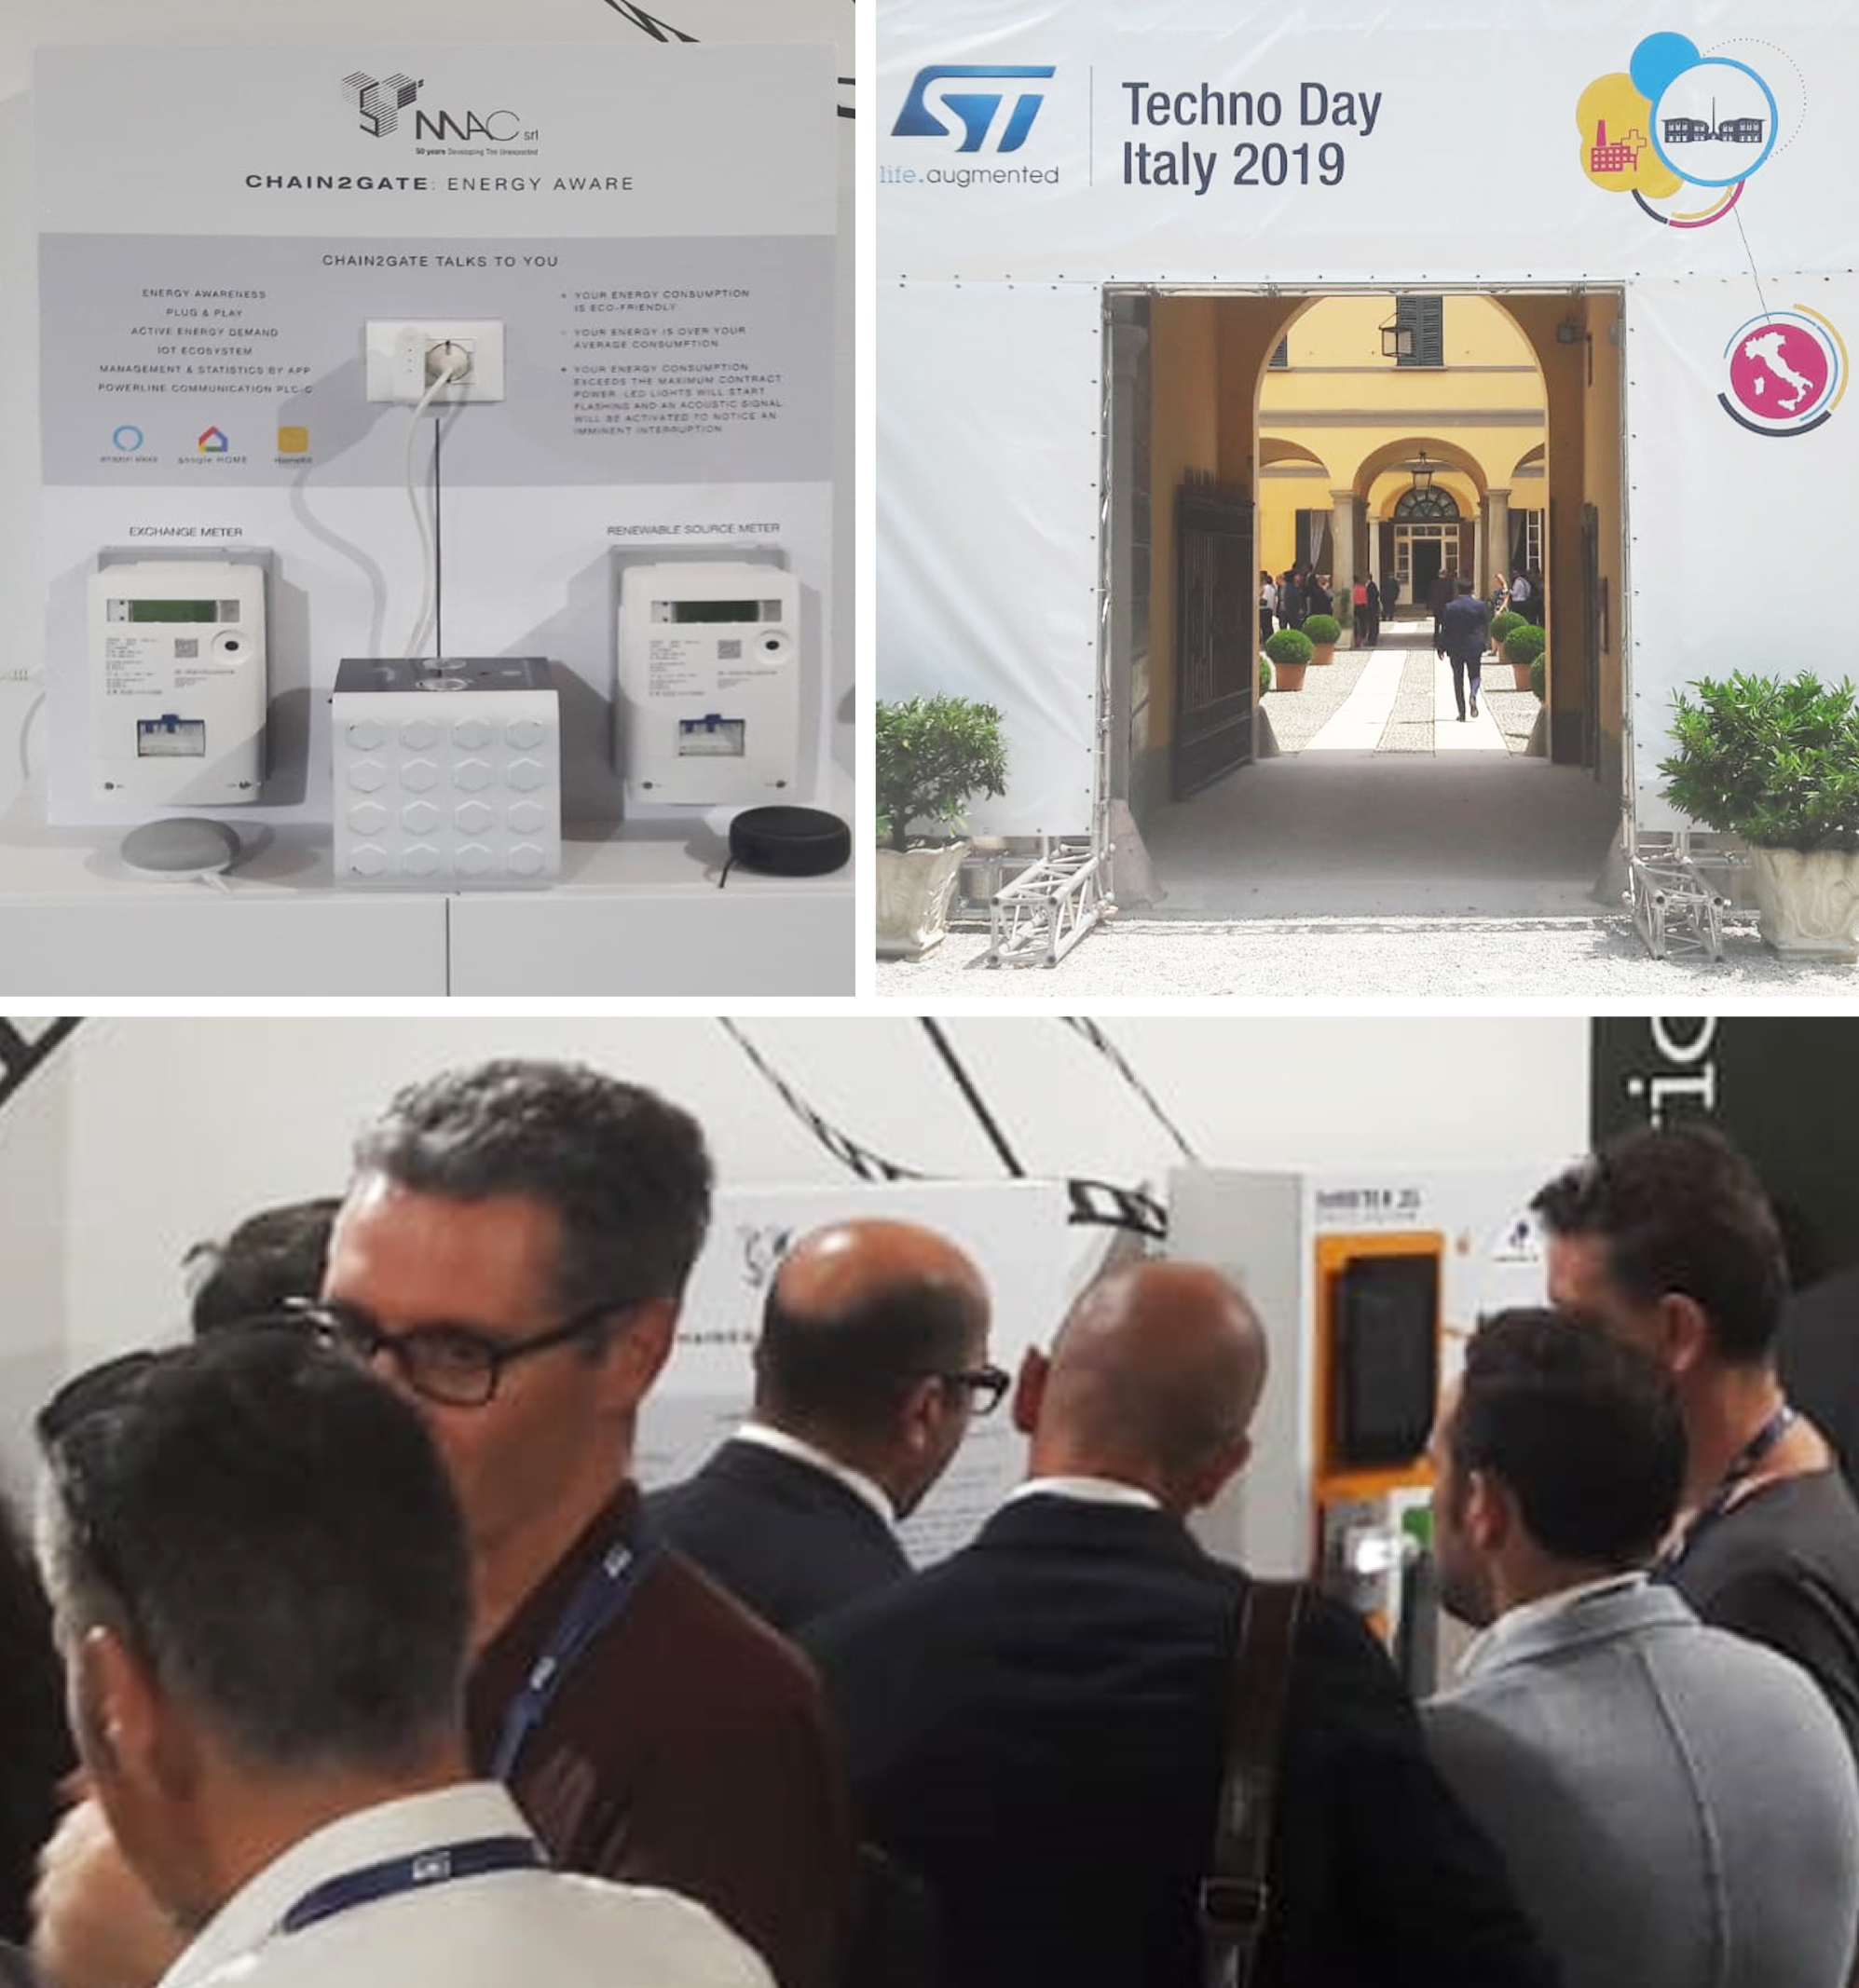 STMicroelectronics | Techno Day Italy 2019